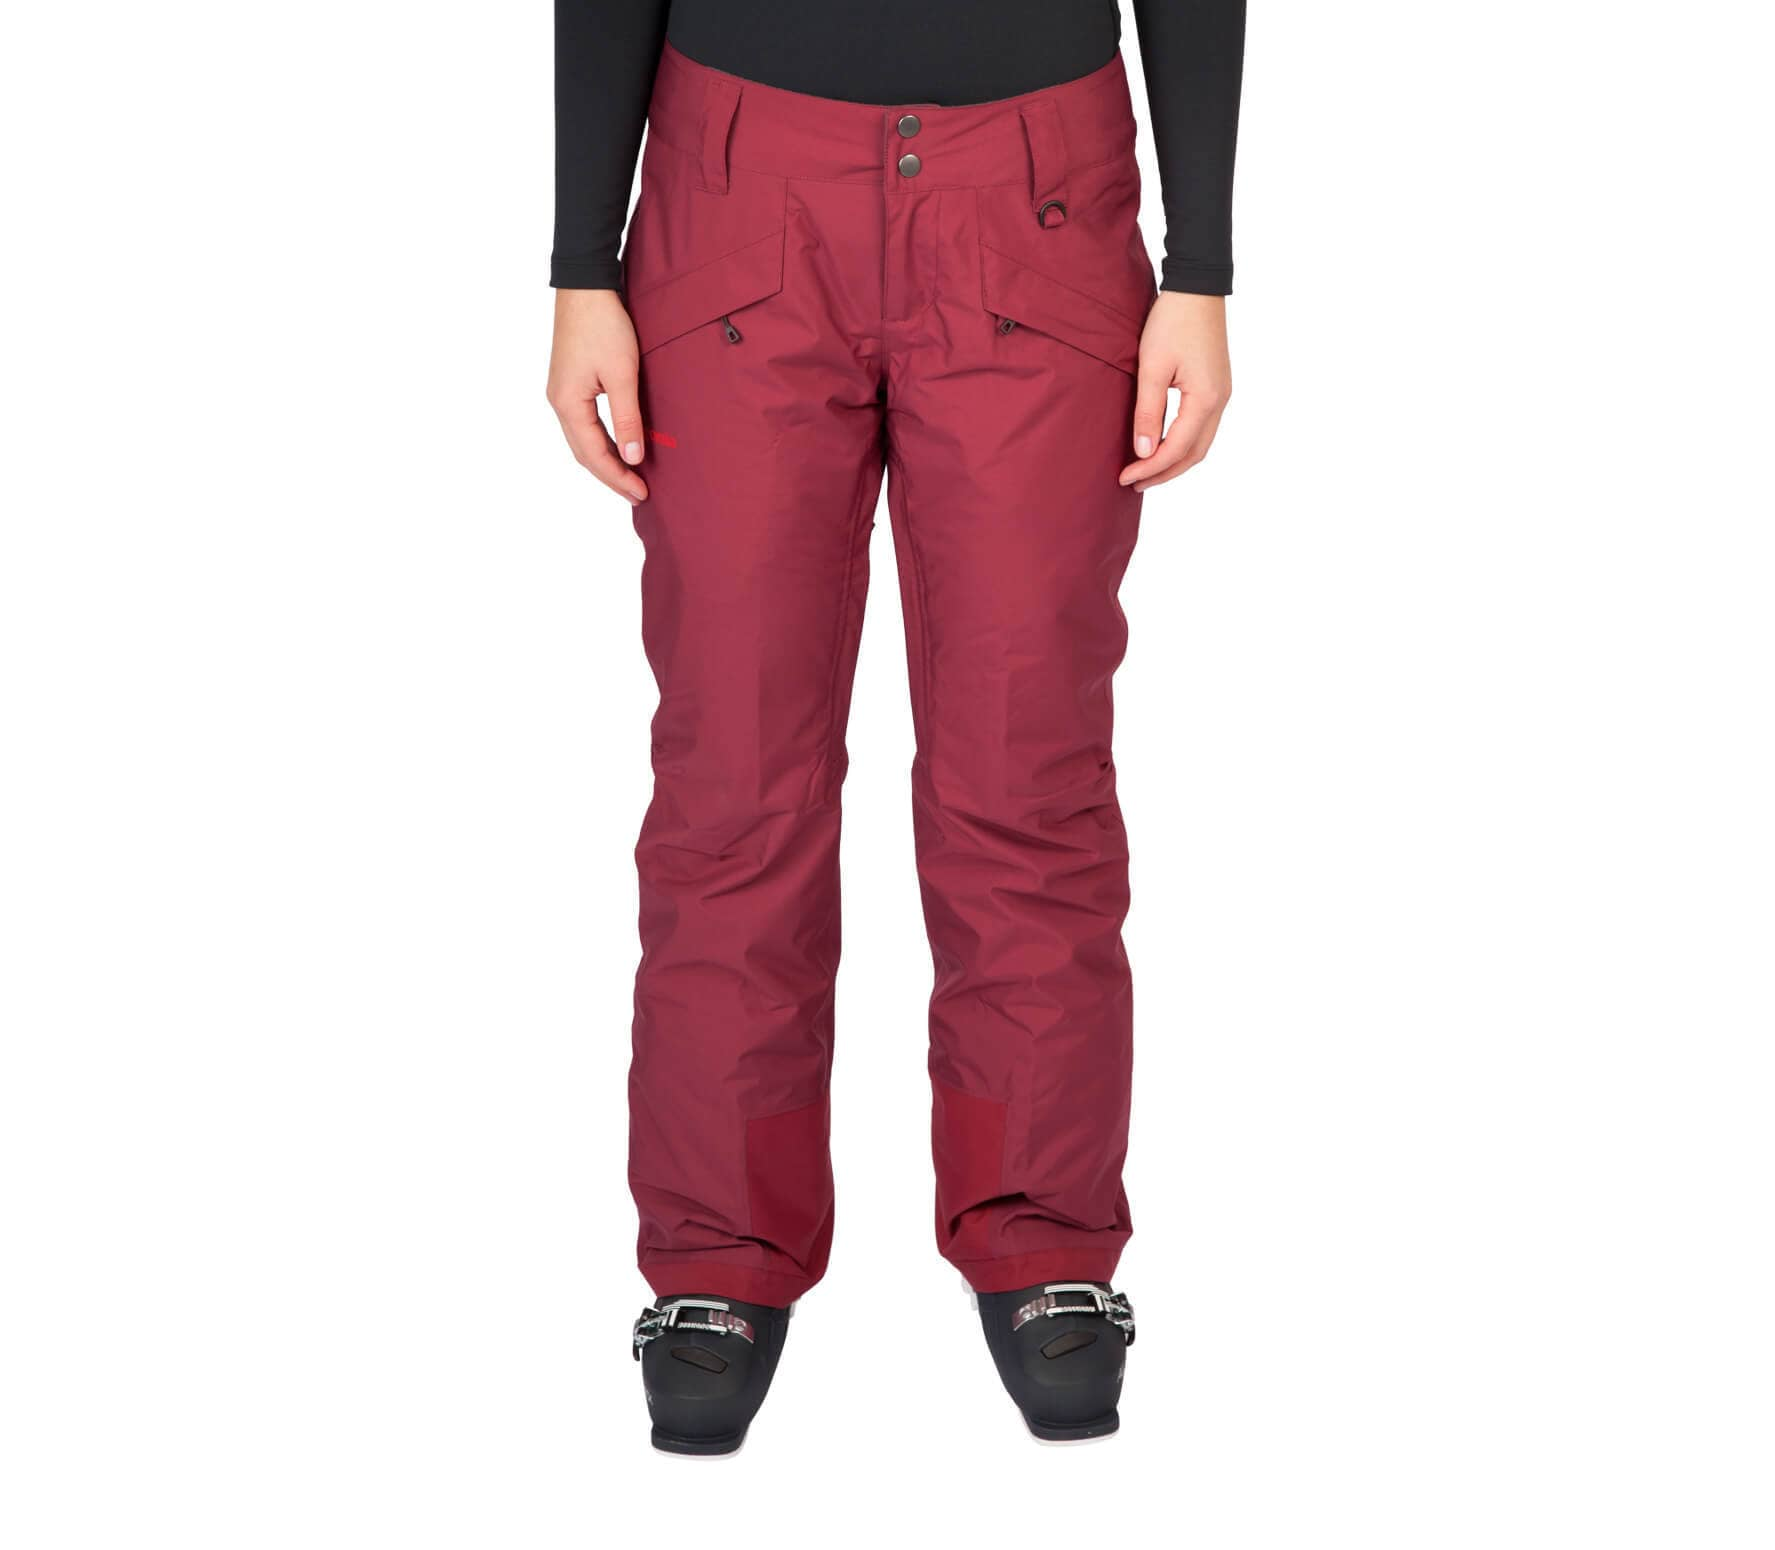 lowest price 16d65 b330e Patagonia - Insulated Snowbelle Donna pantaloni Shell (rosso)